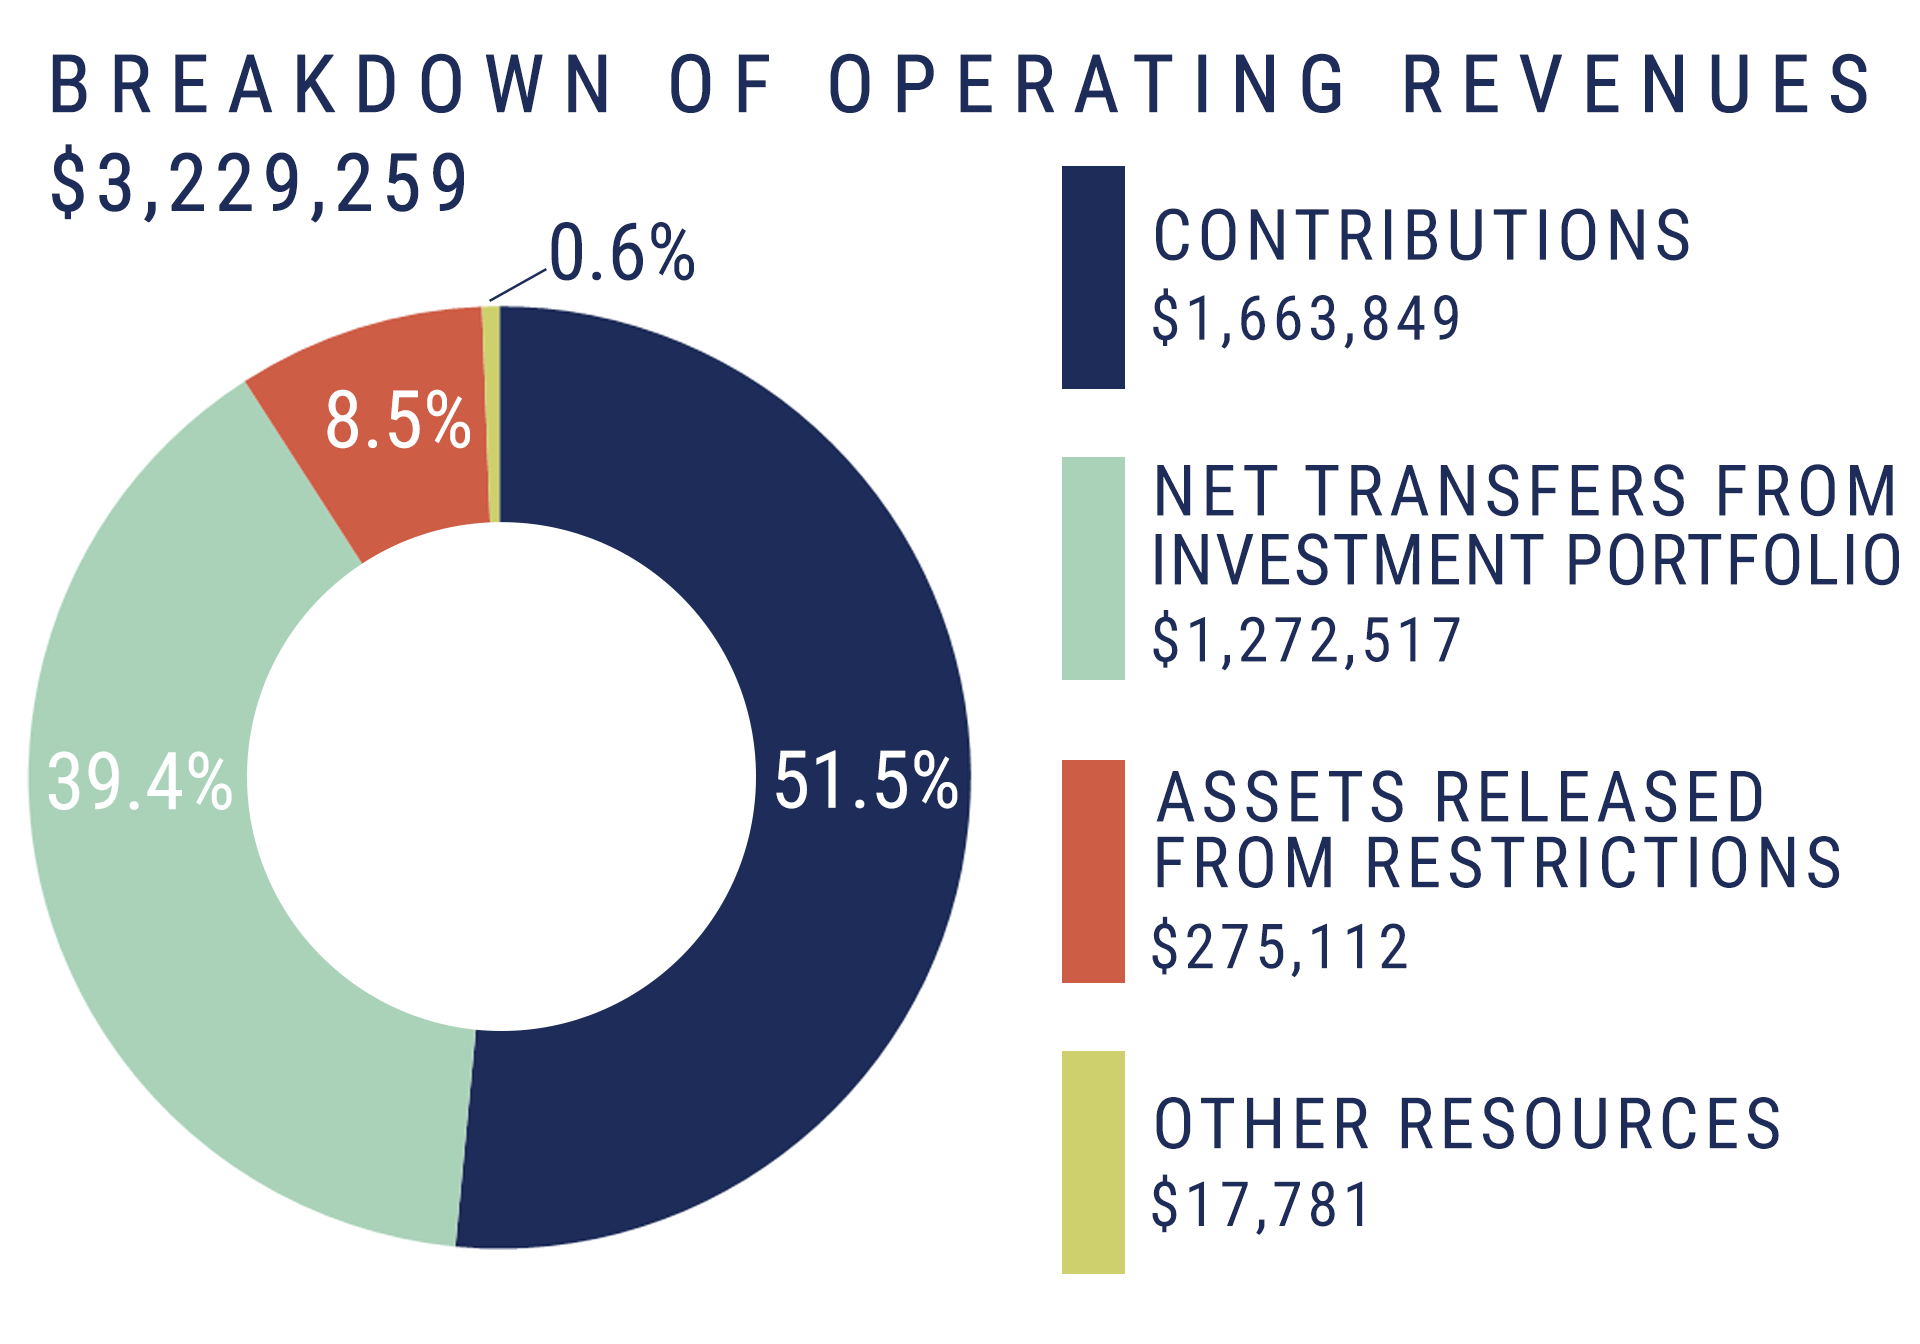 pie-chart_breakdown-of-operating-revenues2018